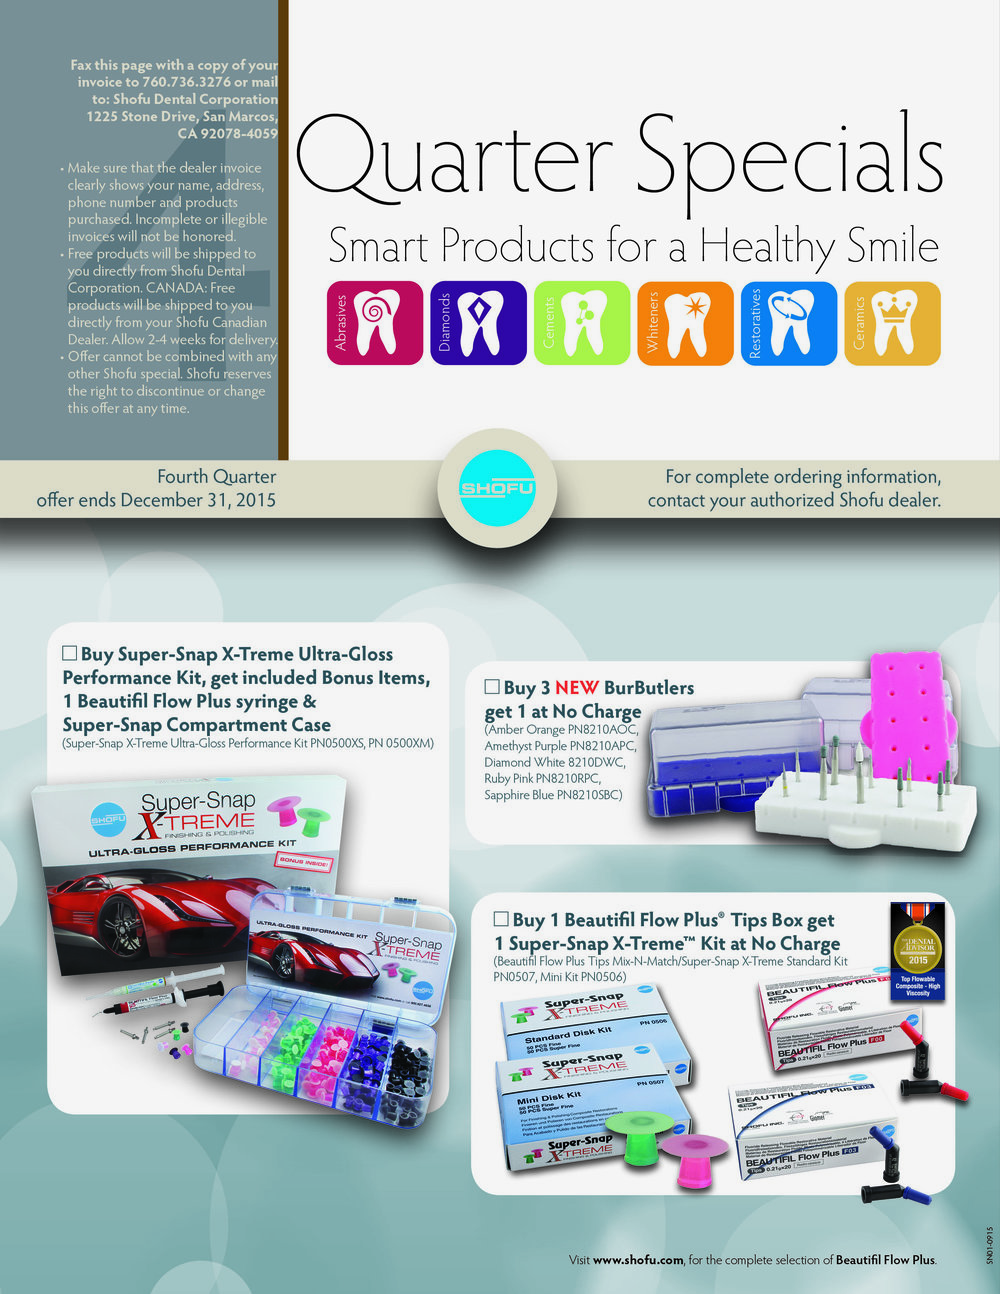 Special offers and contacts (BACK)